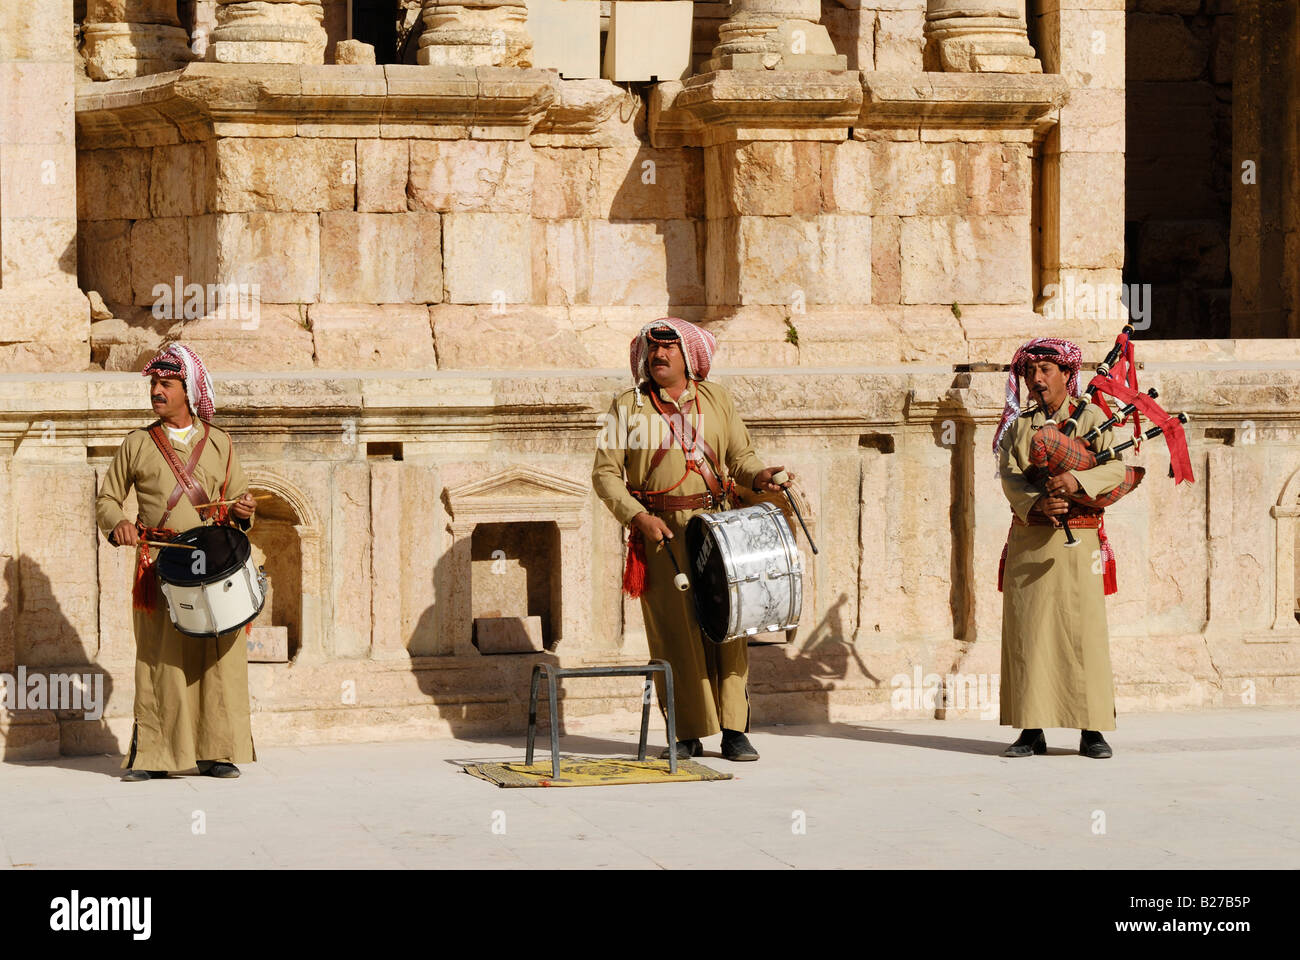 traditional musician with bagpipe in South theater in Ruins of  Jerash, Roman Decapolis city, Jordan, Arabia - Stock Image